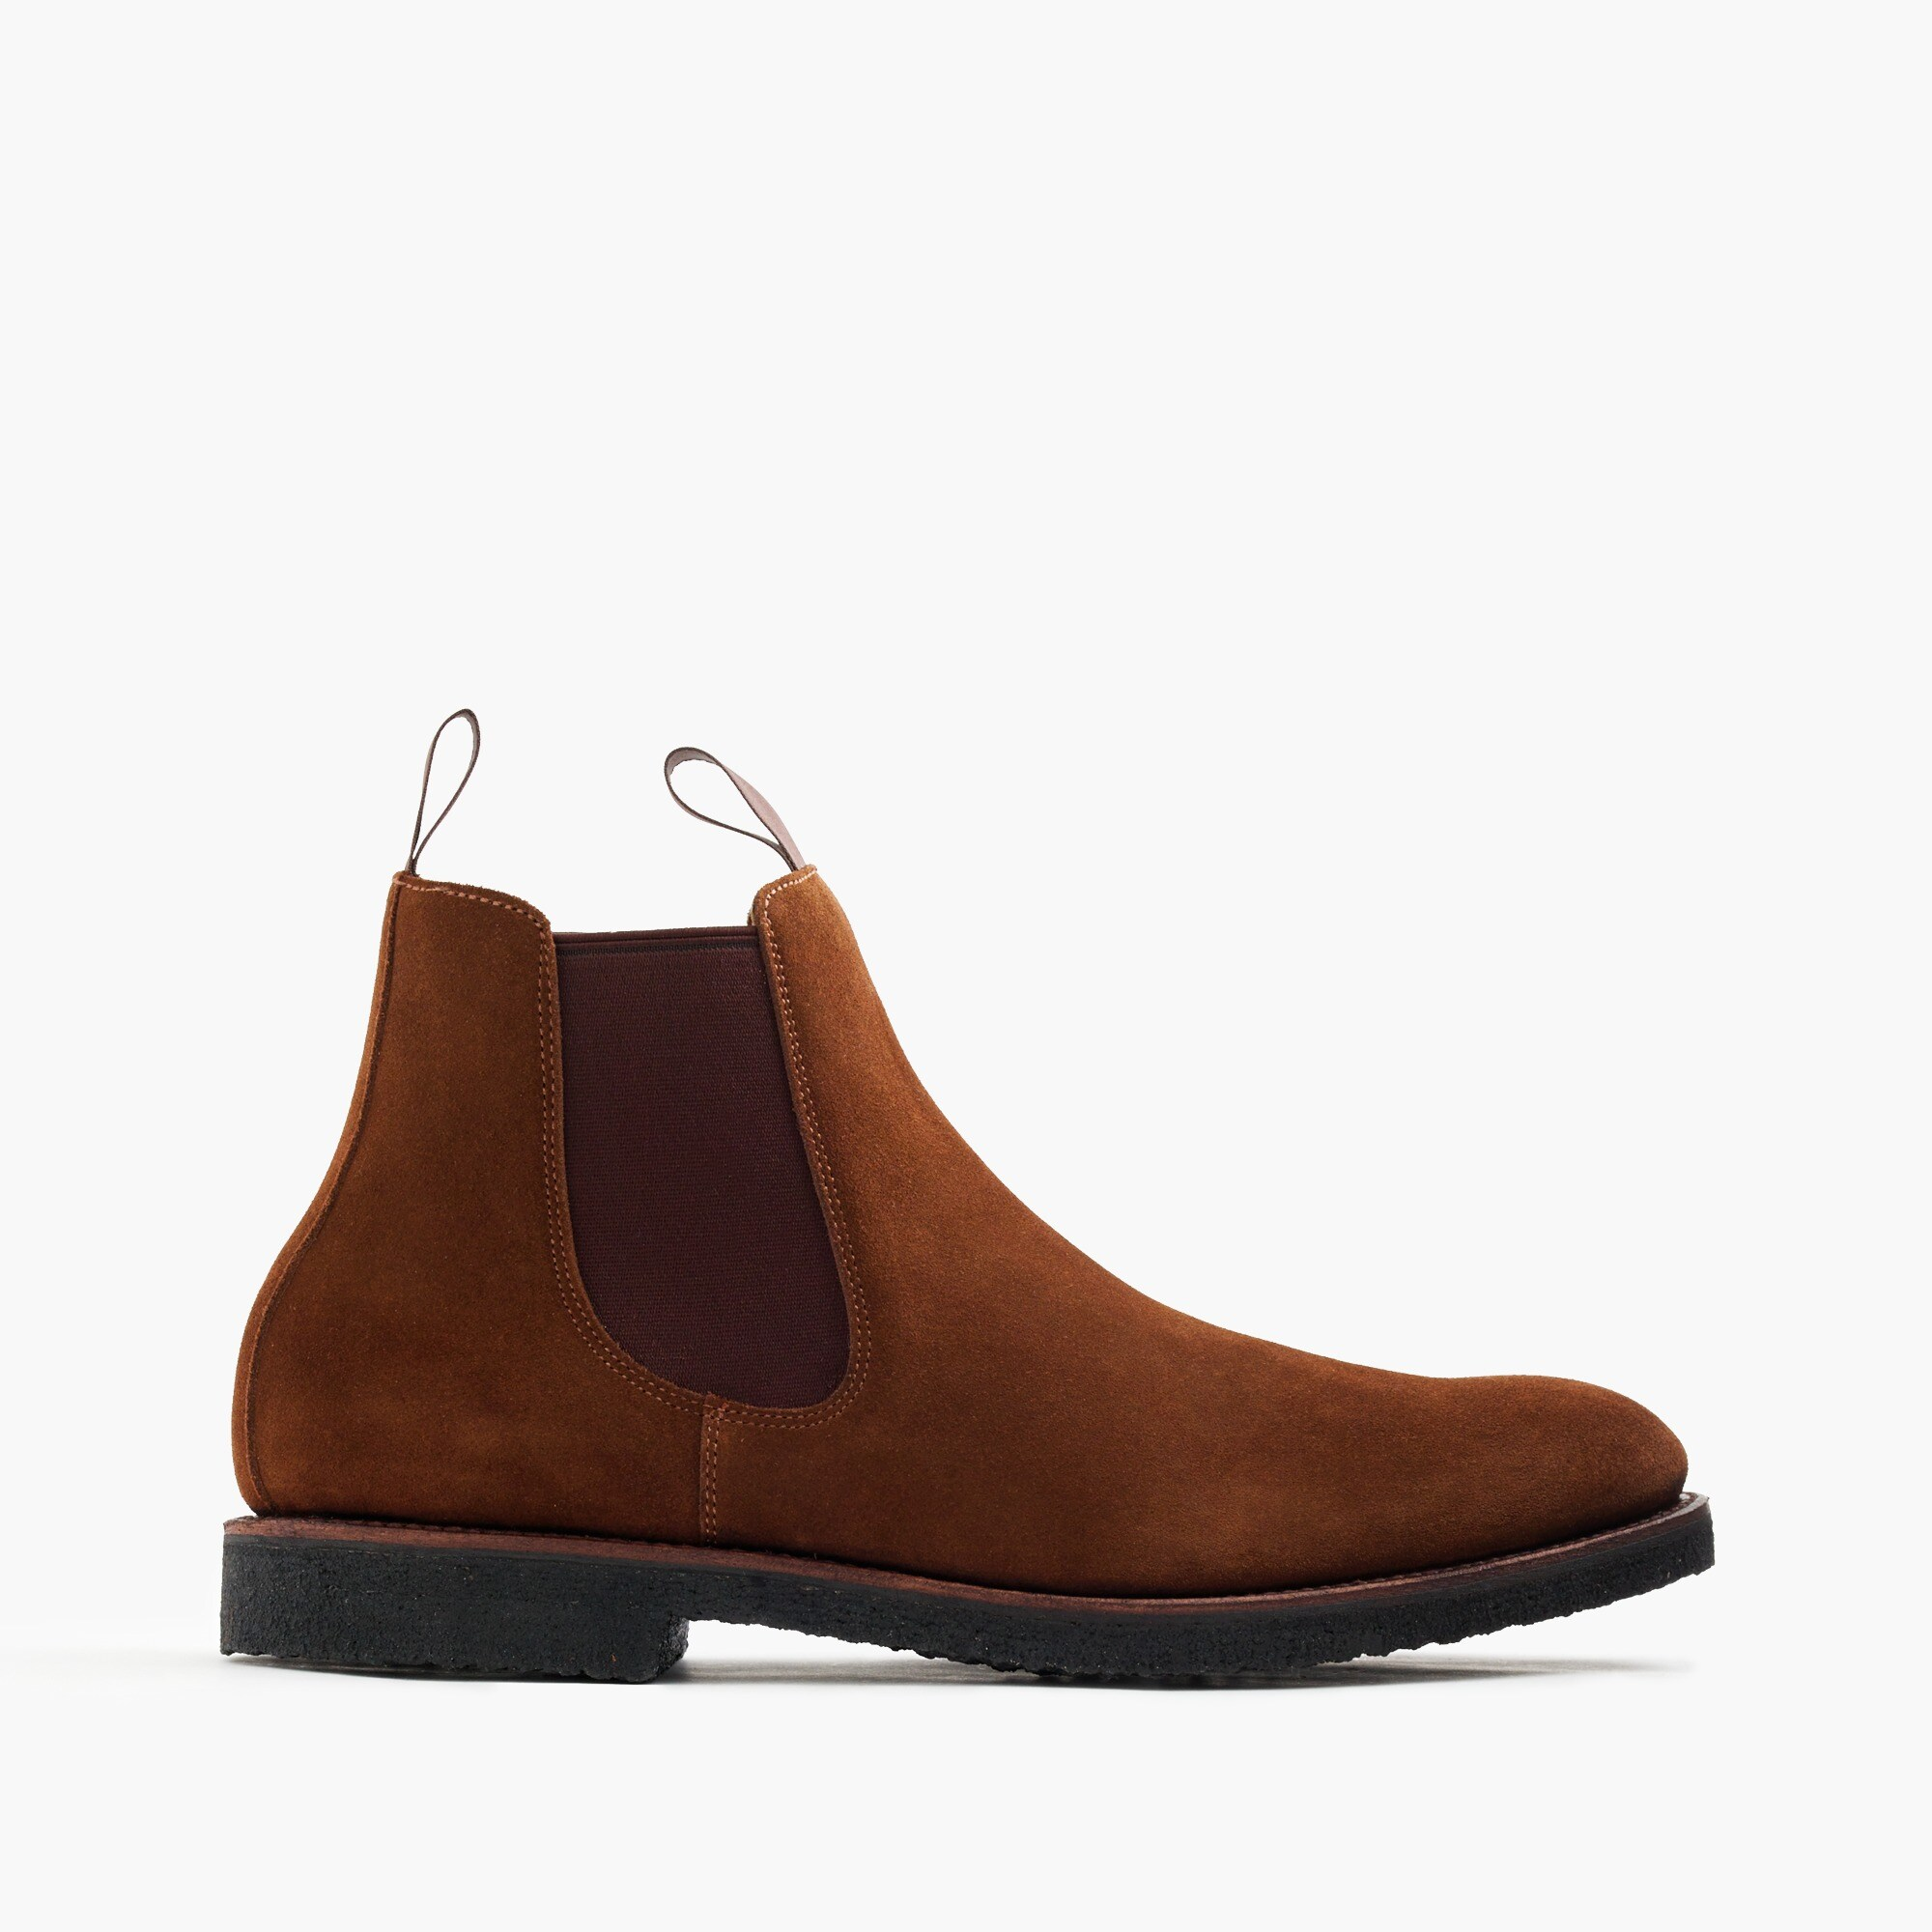 Image 1 for Kenton suede Chelsea boots